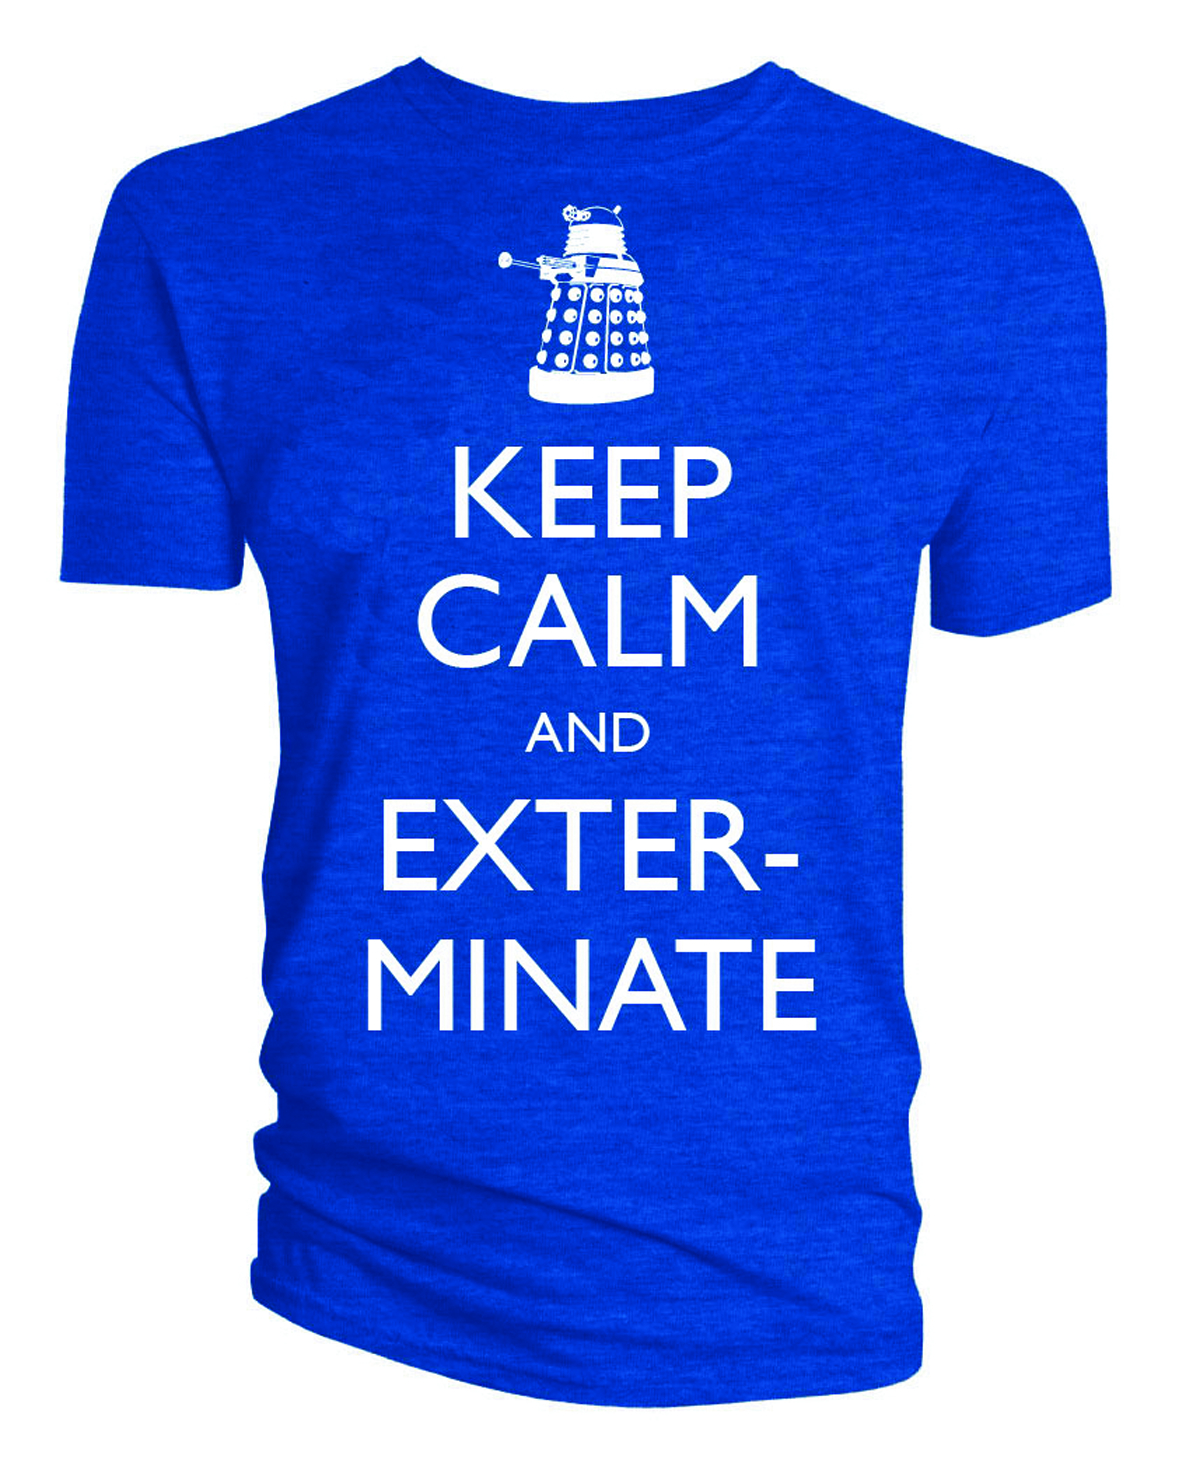 DOCTOR WHO KEEP CALM AND EXTERMINATE T/S XL